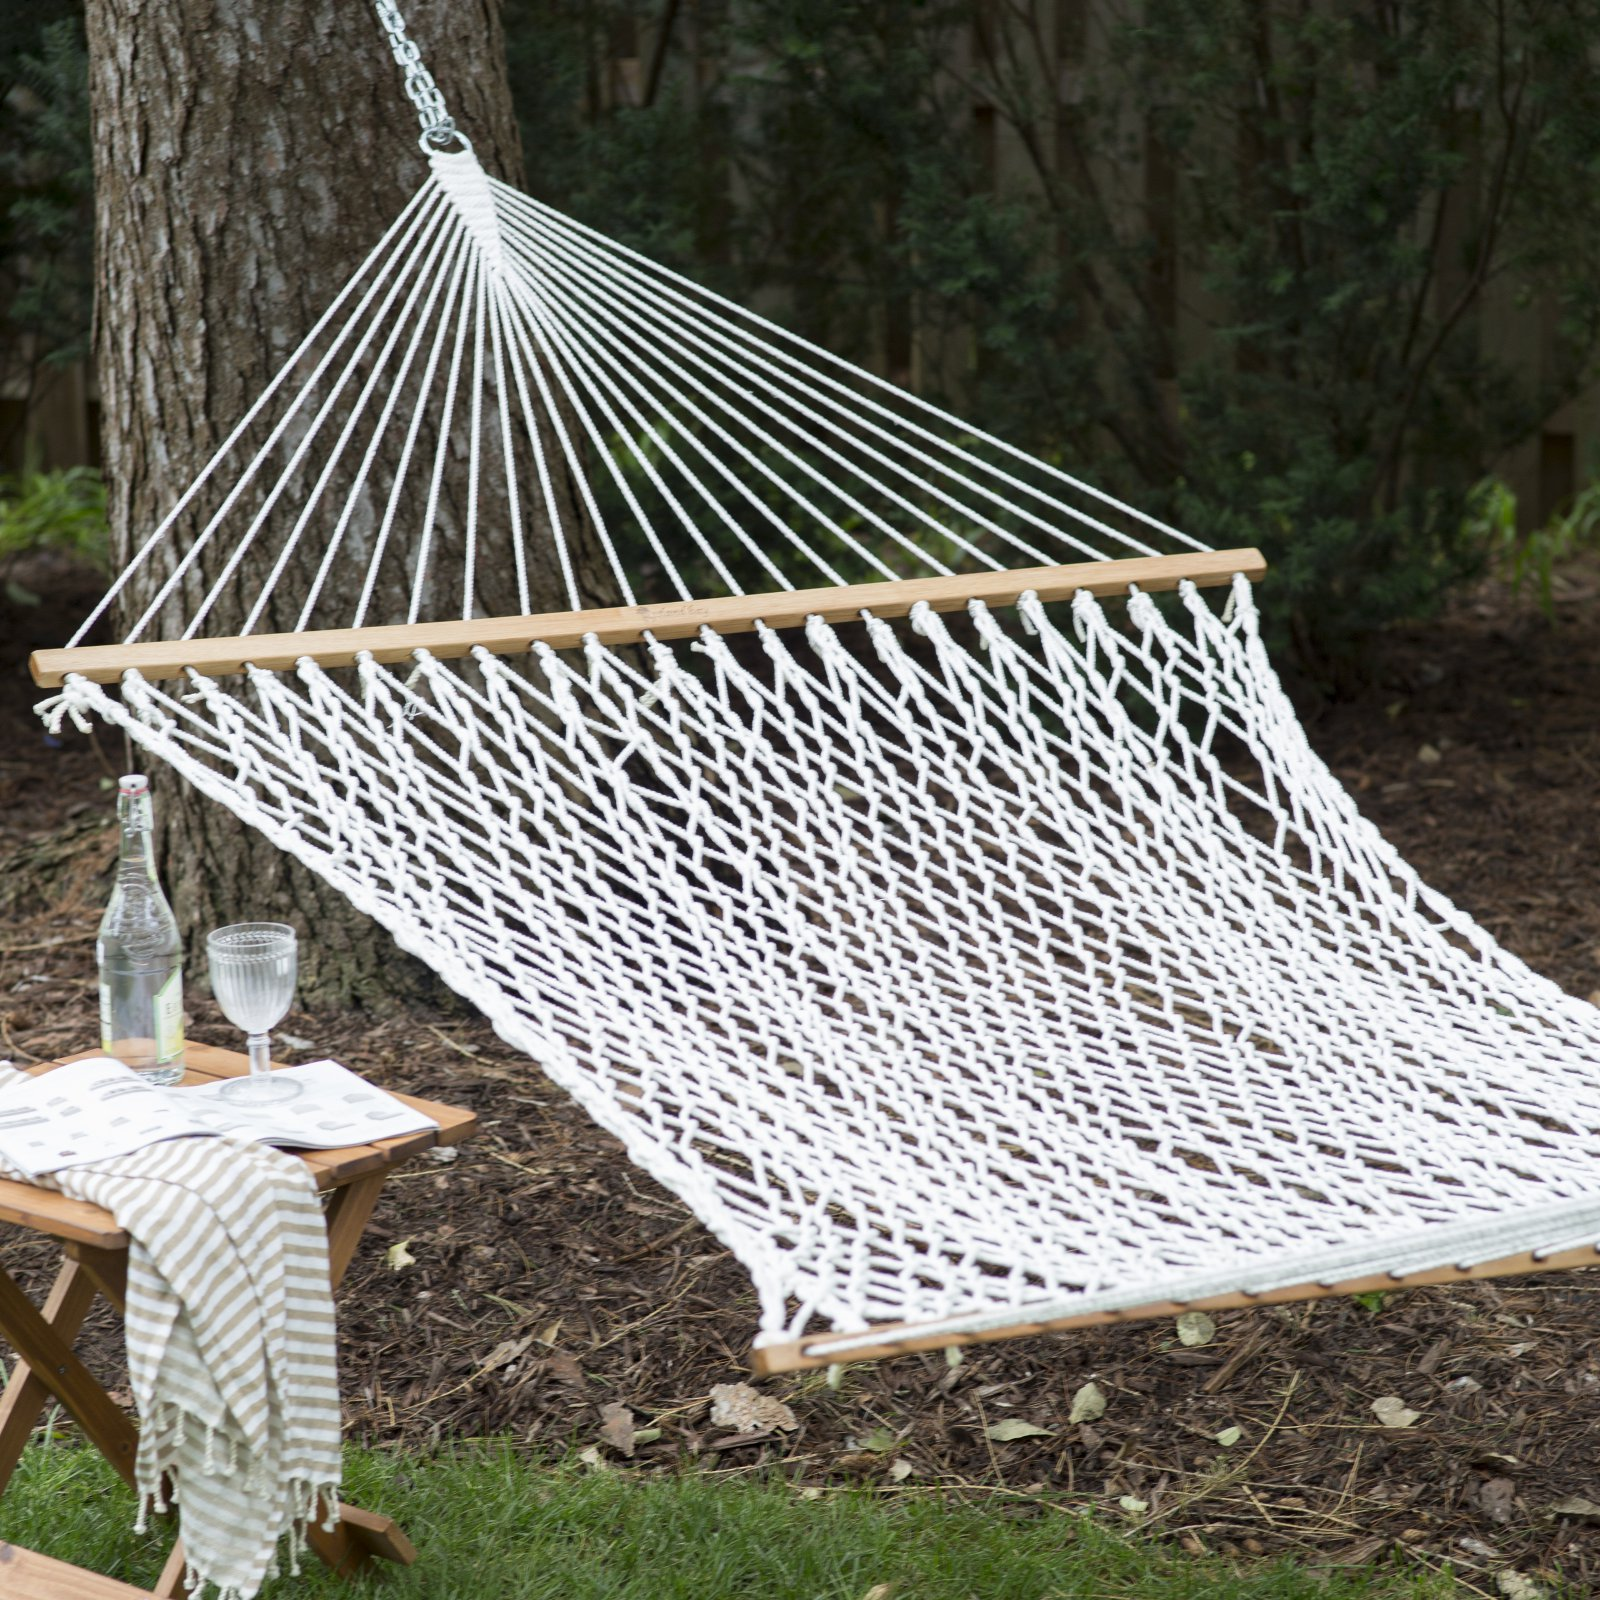 Coral Coast XL Thick Rope Double Hammock with FREE Hanging Hardware - Walmart.com